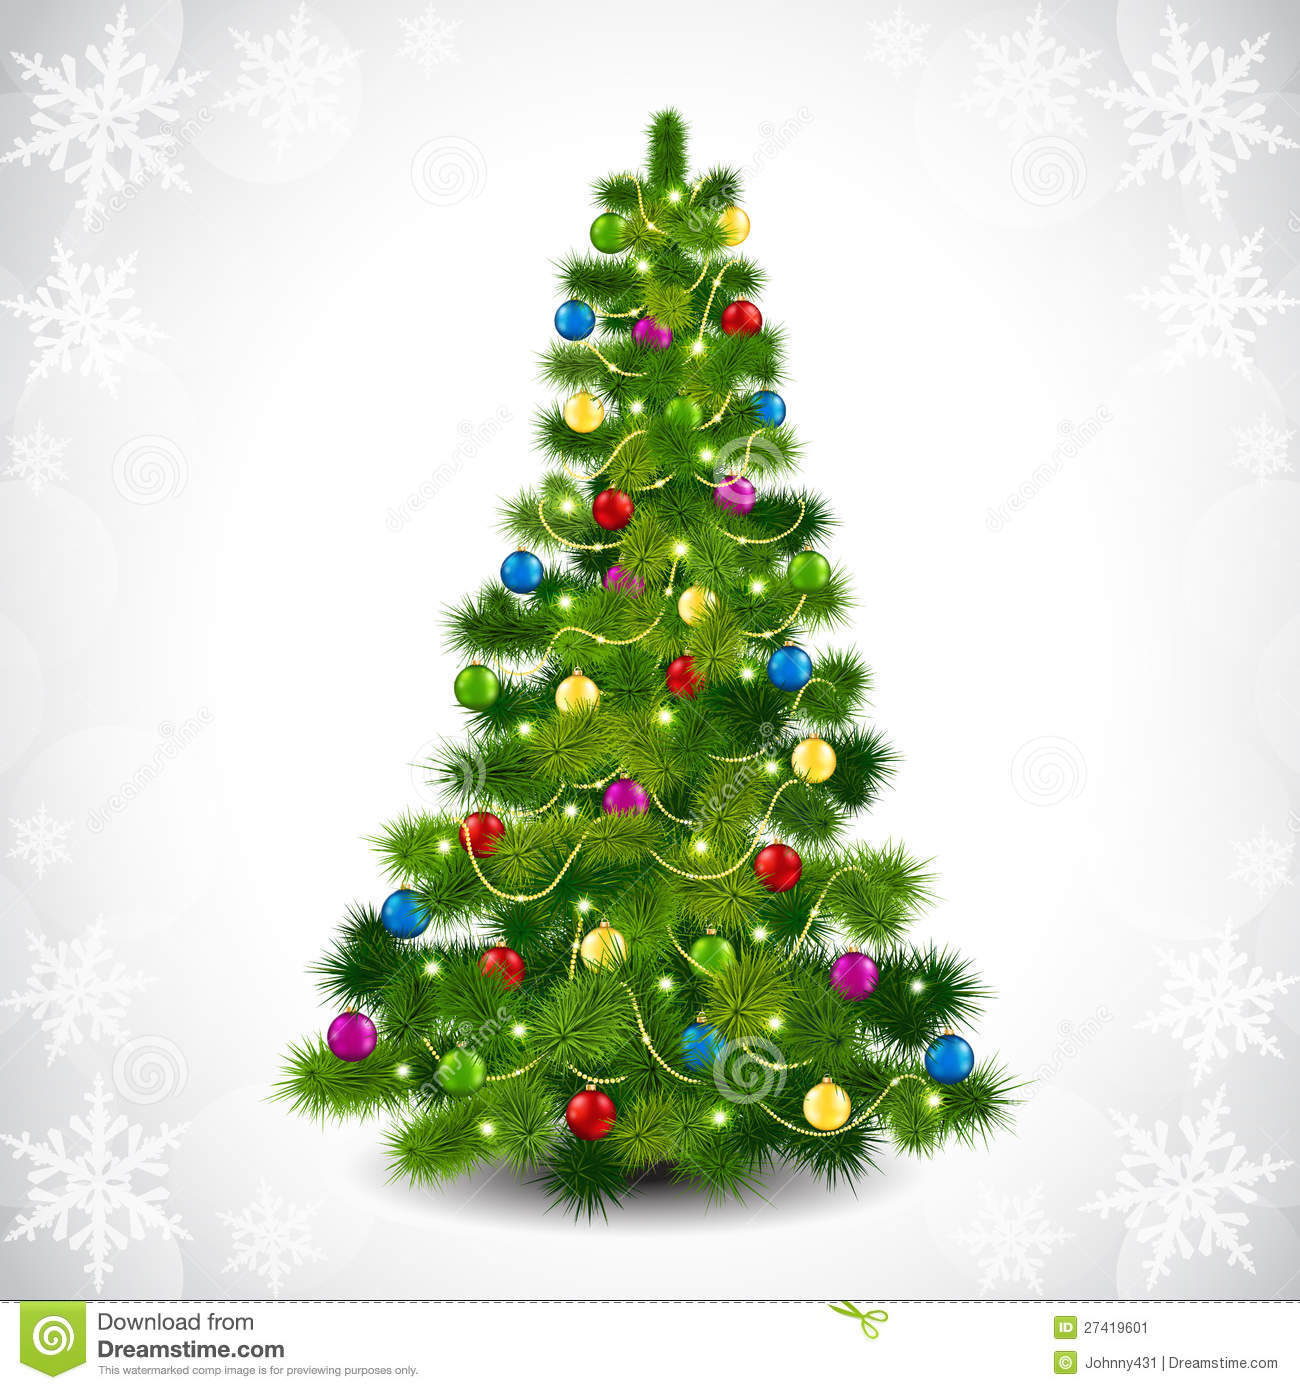 Christmas Tree With Colored Balls Stock Vector - Illustration of ...